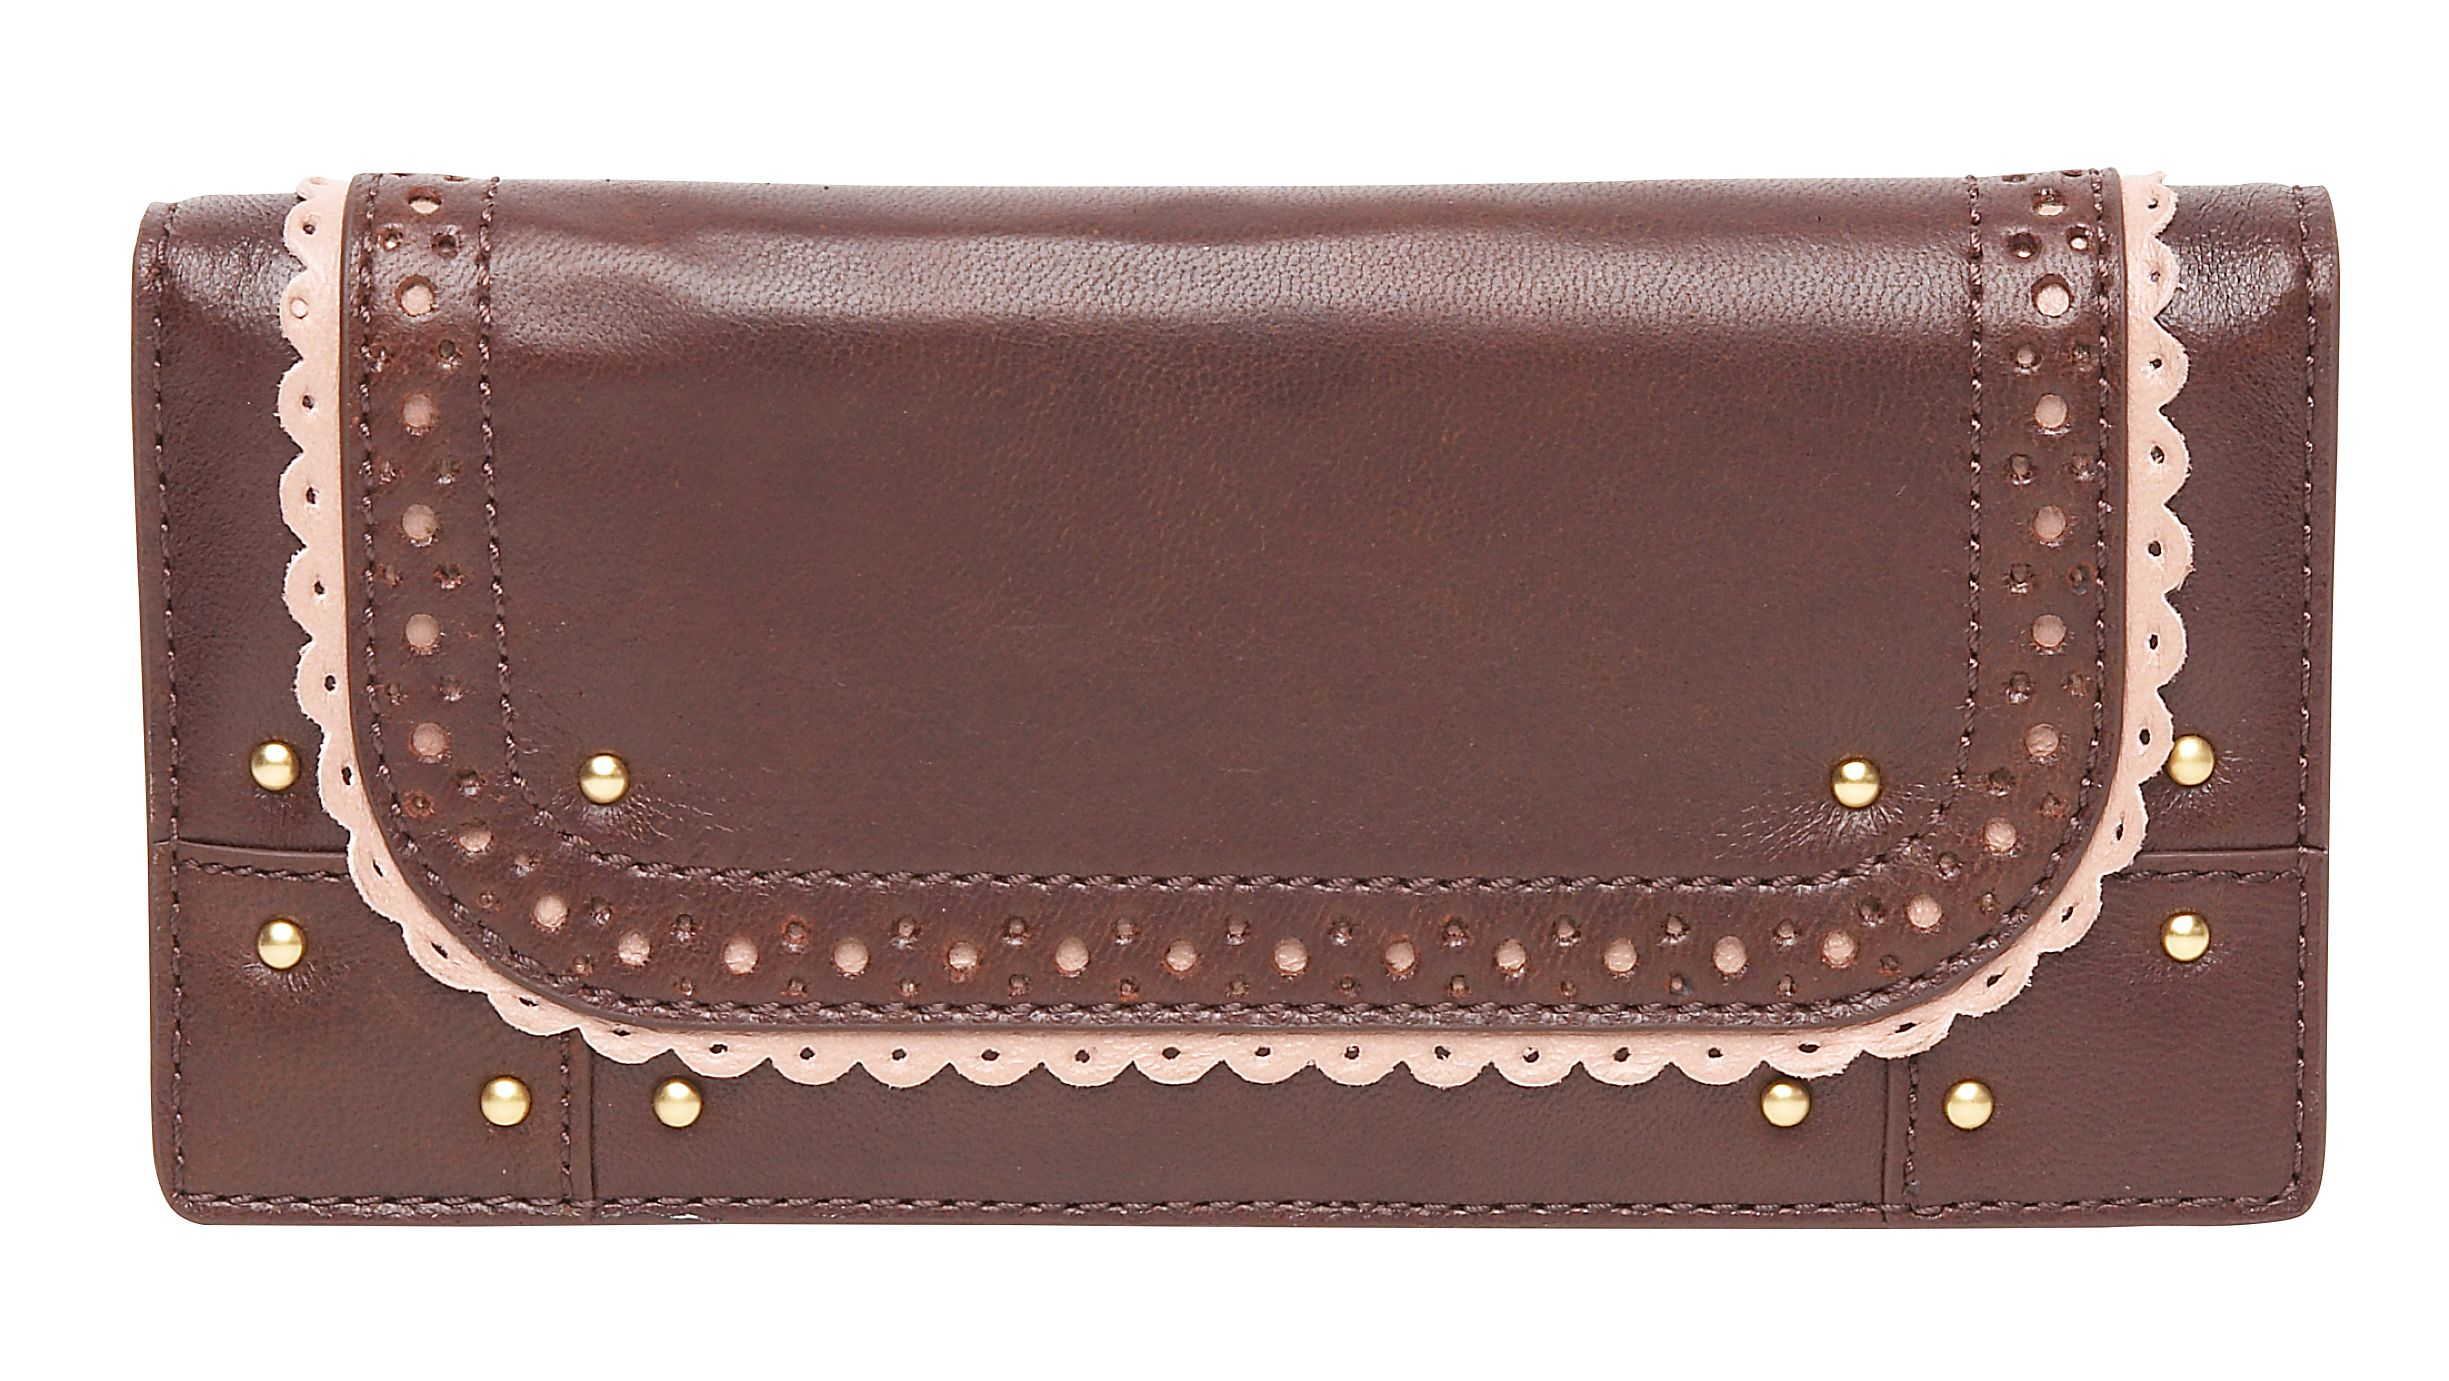 Brogue wallet with contrast colour leather